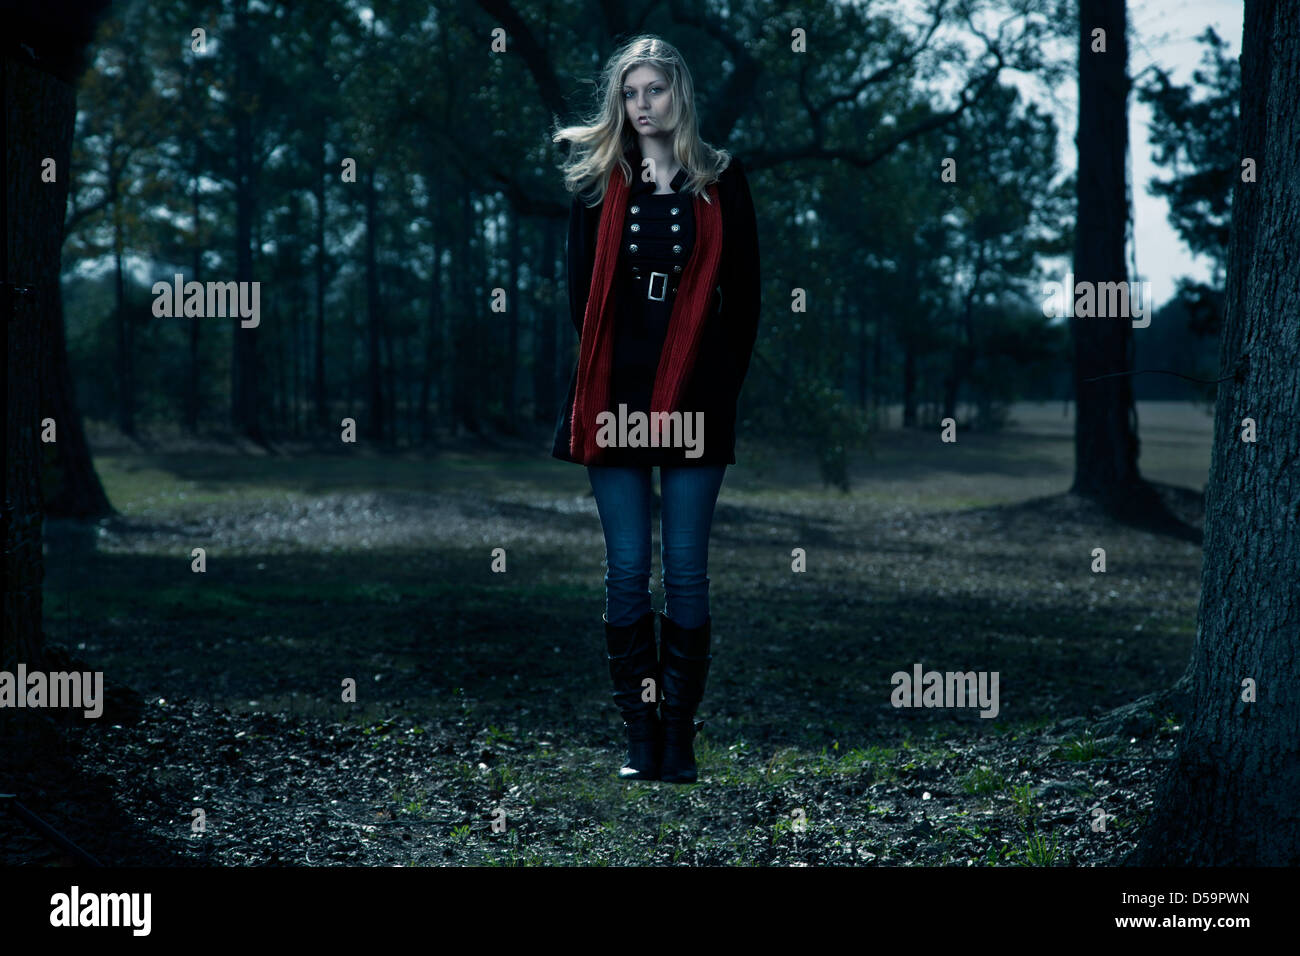 Blond woman black coat red scarf floating outdoors woods blue sky - Stock Image